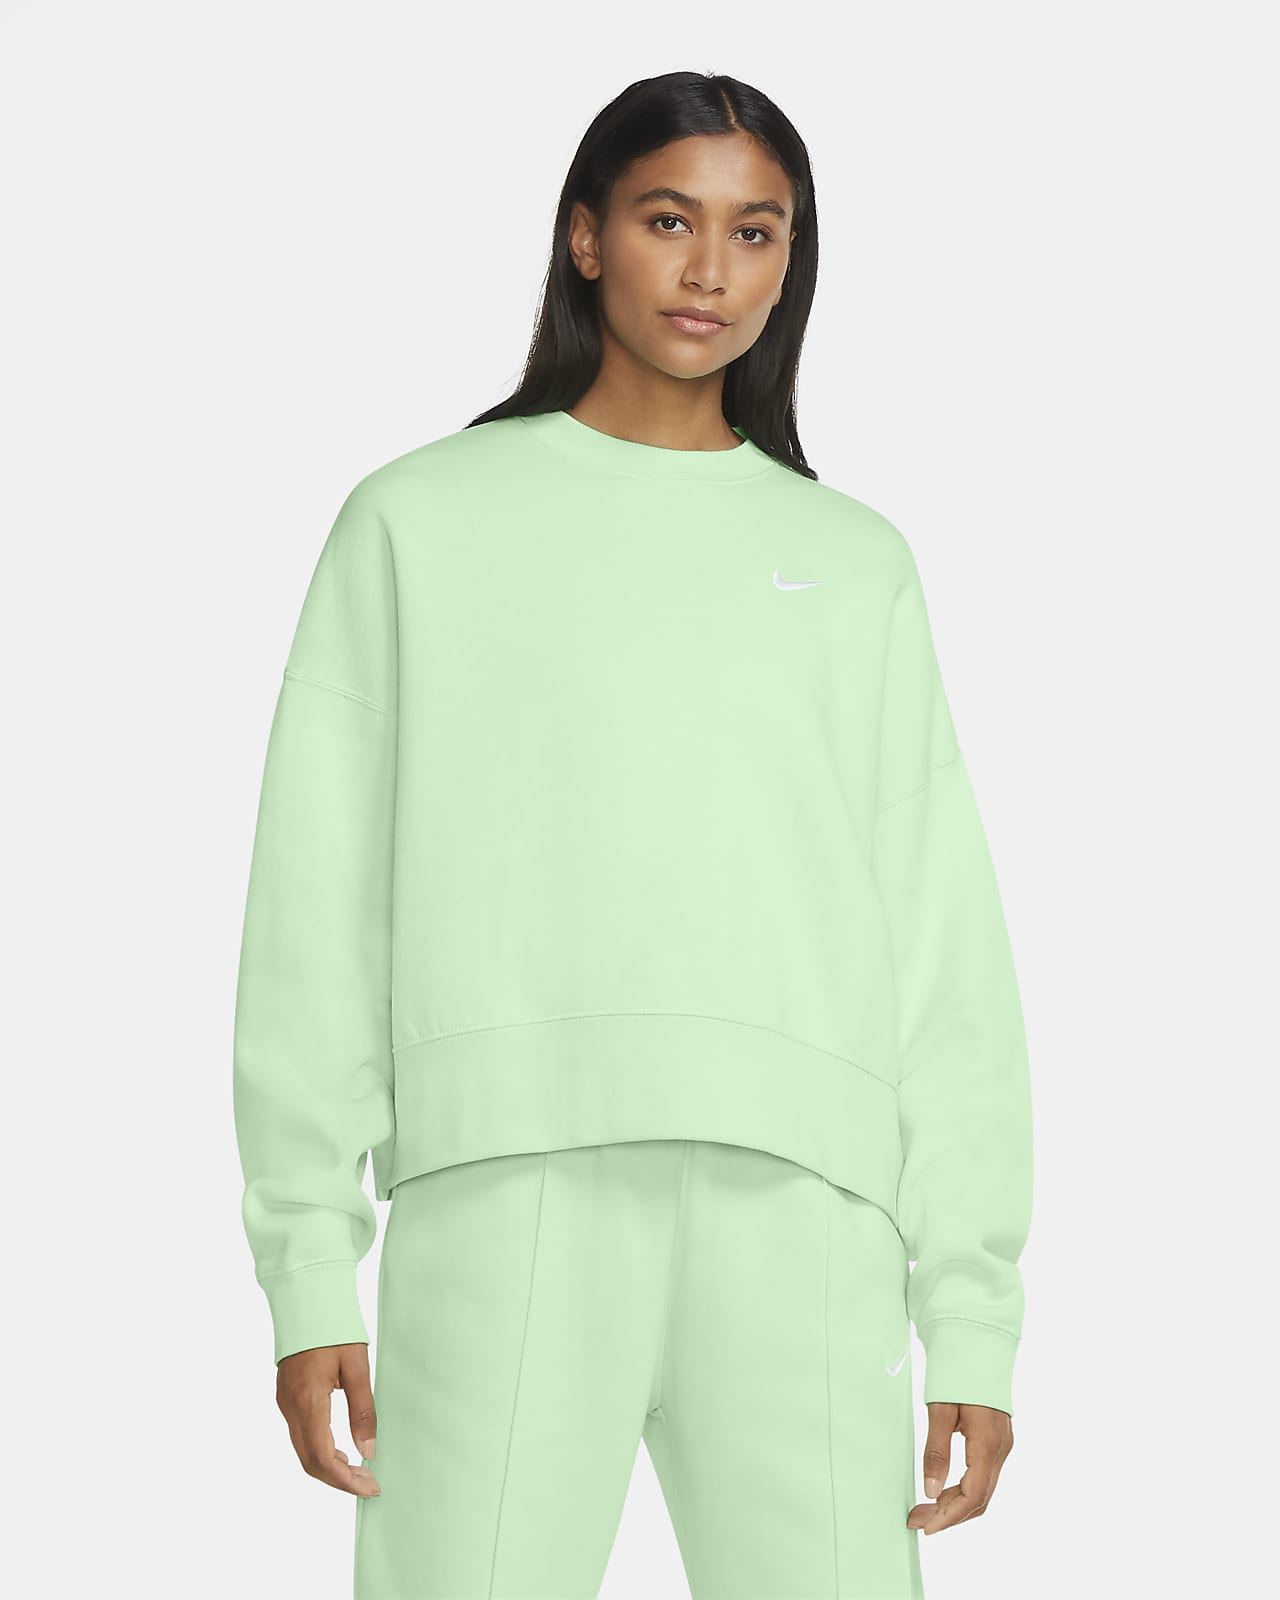 Shop den Nike Essential Fleece Crew Oversized Sweatshirt in